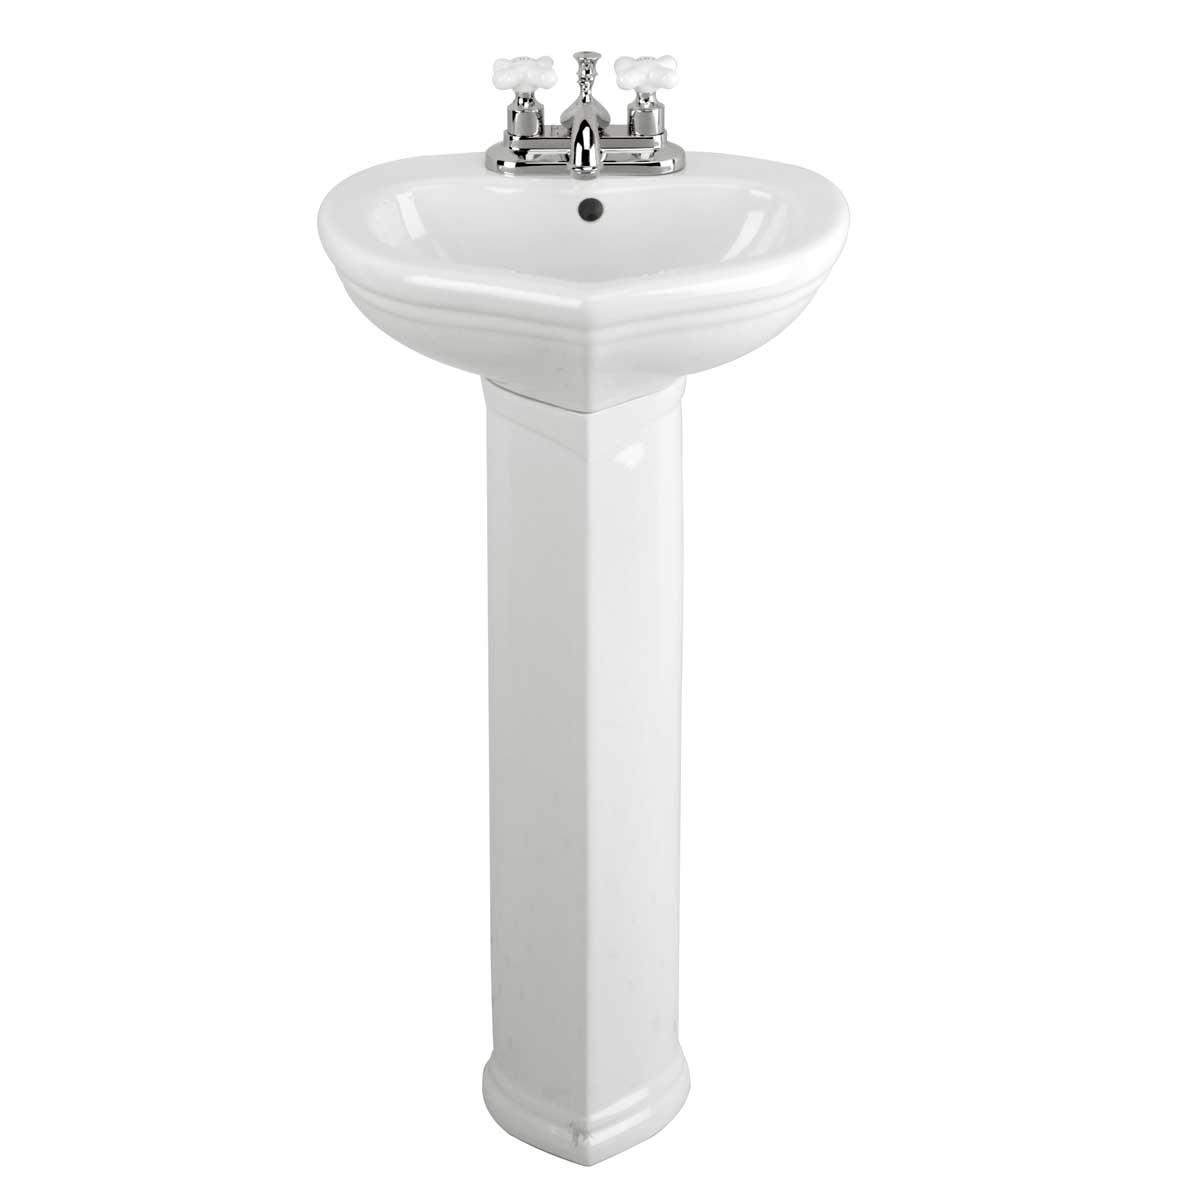 Short Pedestal Sink : Small Pedestal Sink White Bathroom China Sweet Heart